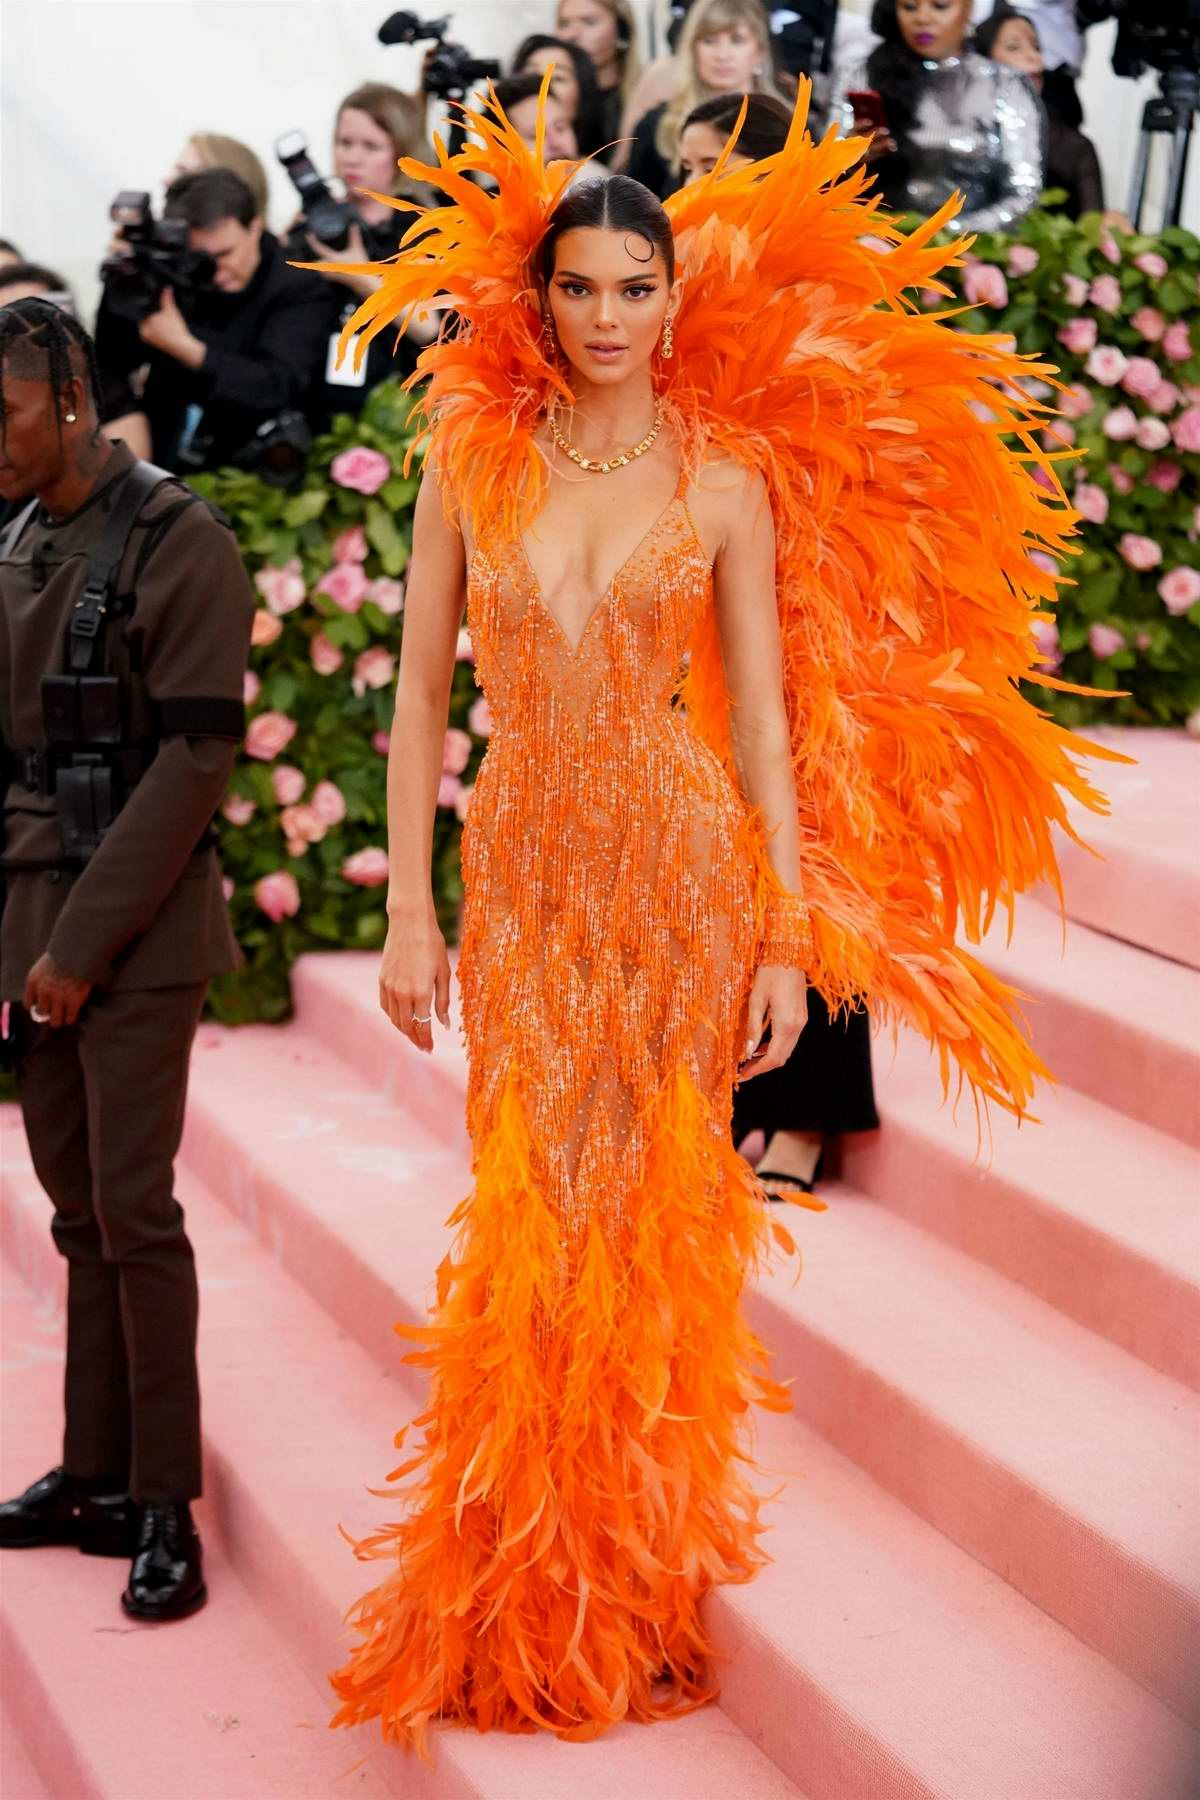 Kendall Jenner attends The 2019 Met Gala Celebrating Camp: Notes on Fashion in New York City